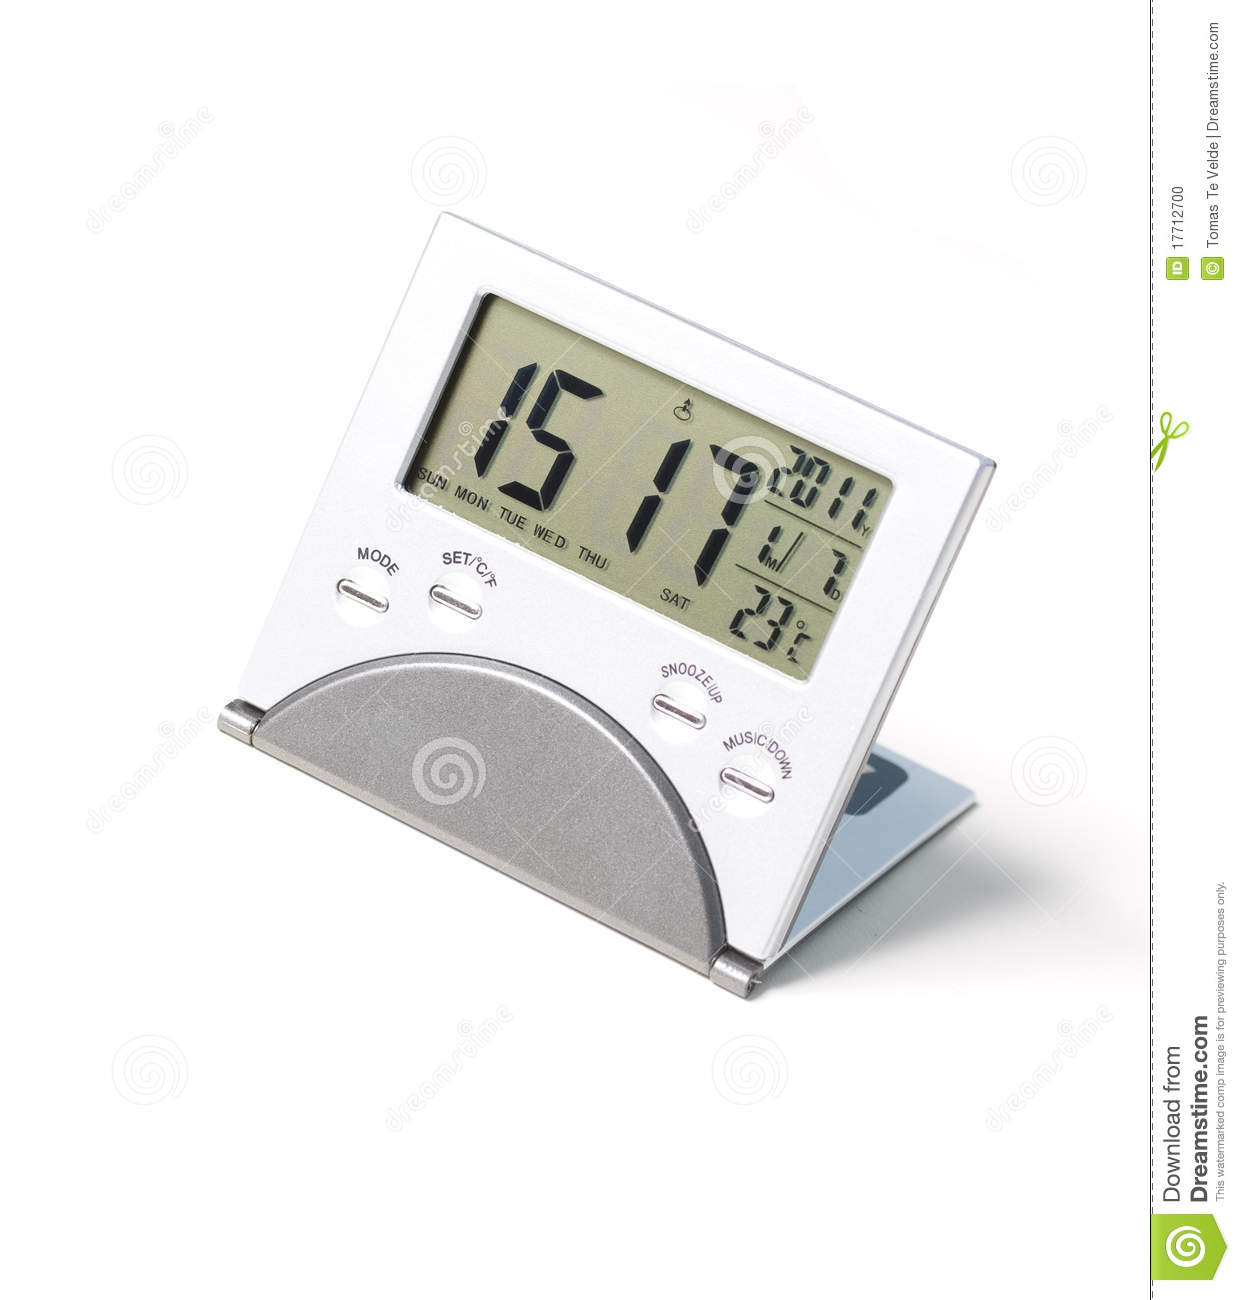 Digital Desk Clock A Small Digital Clock Stock Photo Image 17712700